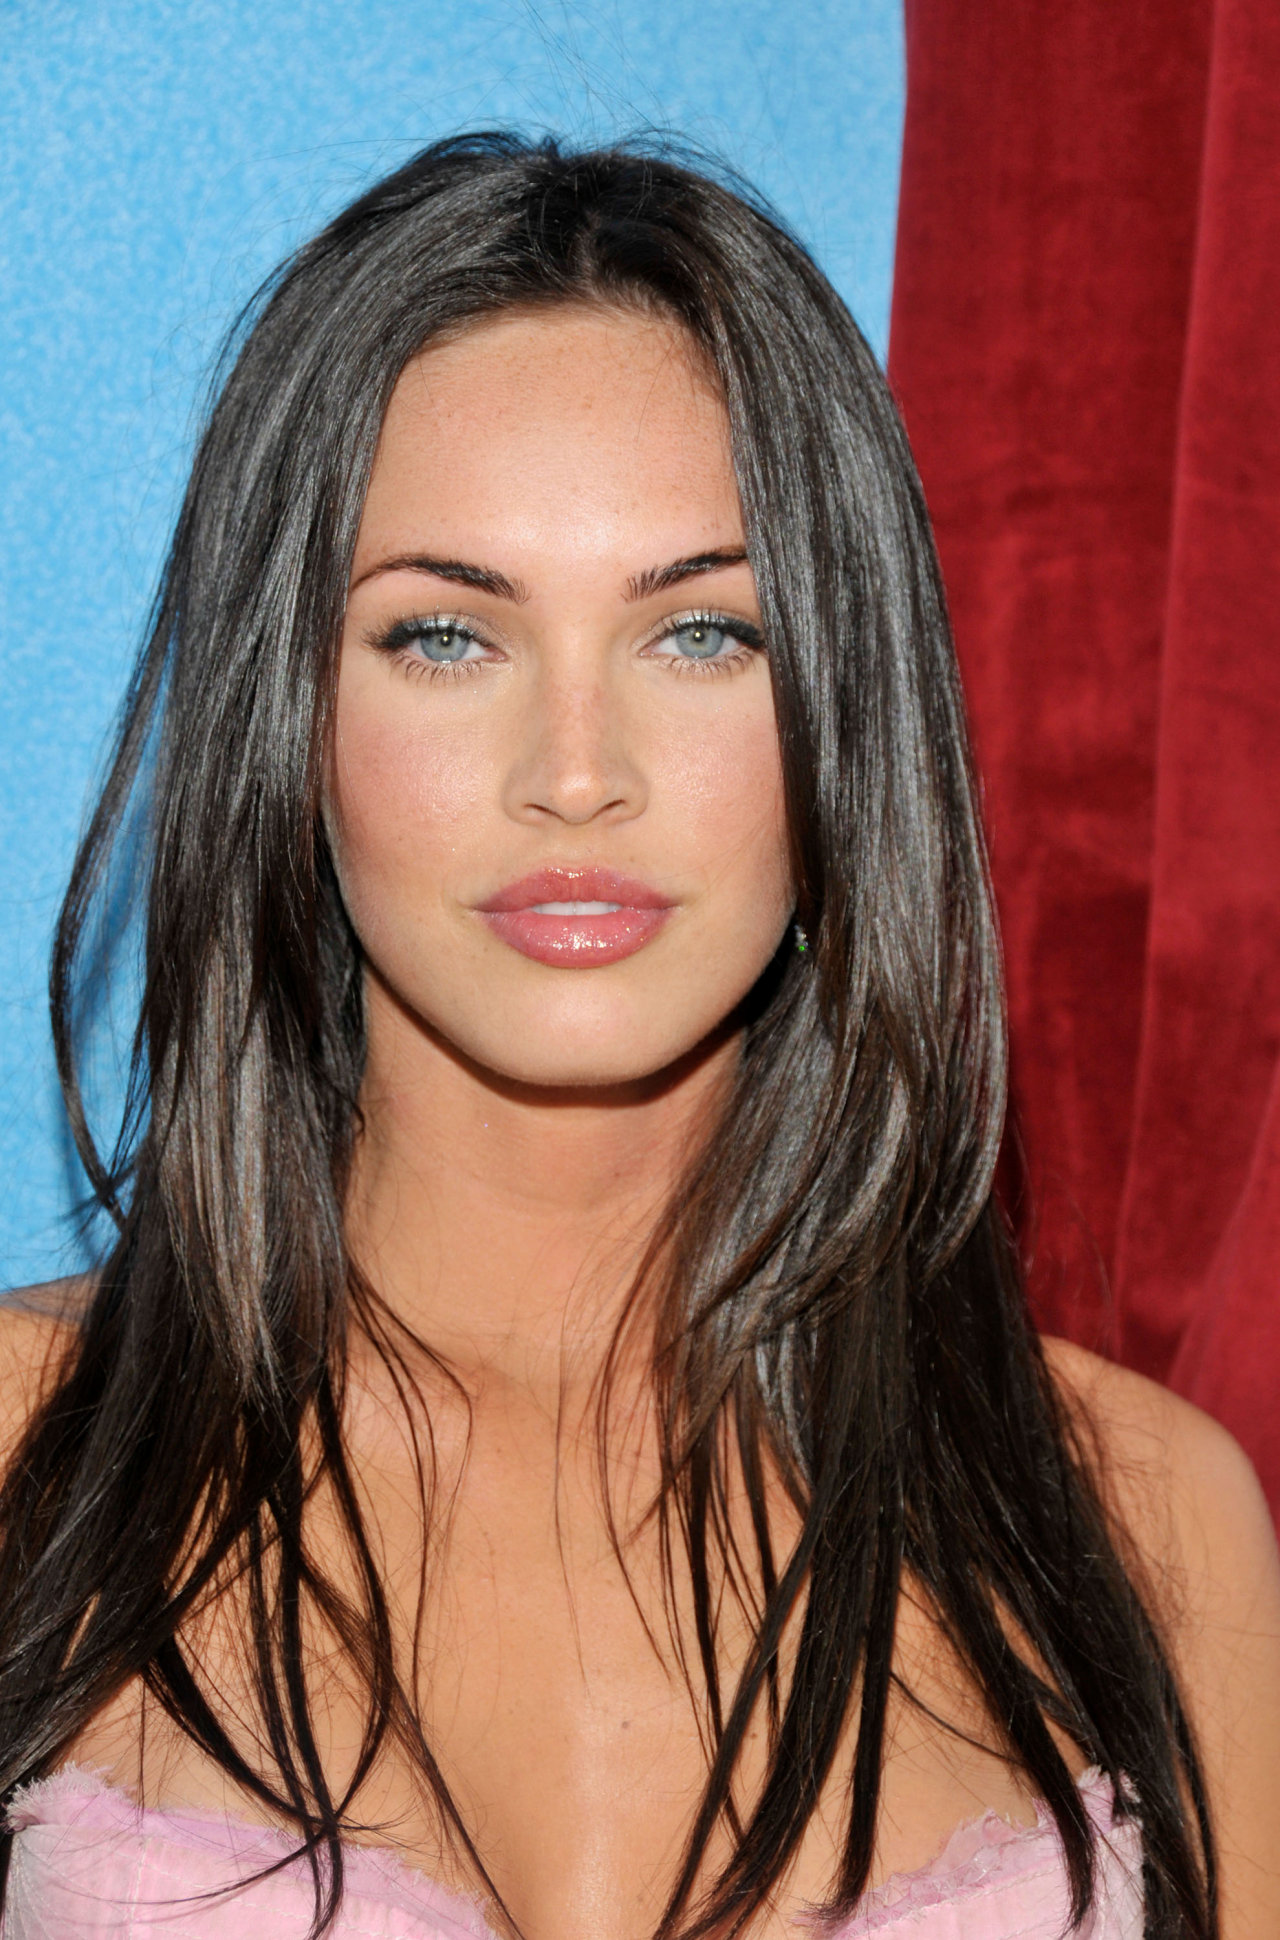 Megan Fox photo #73726